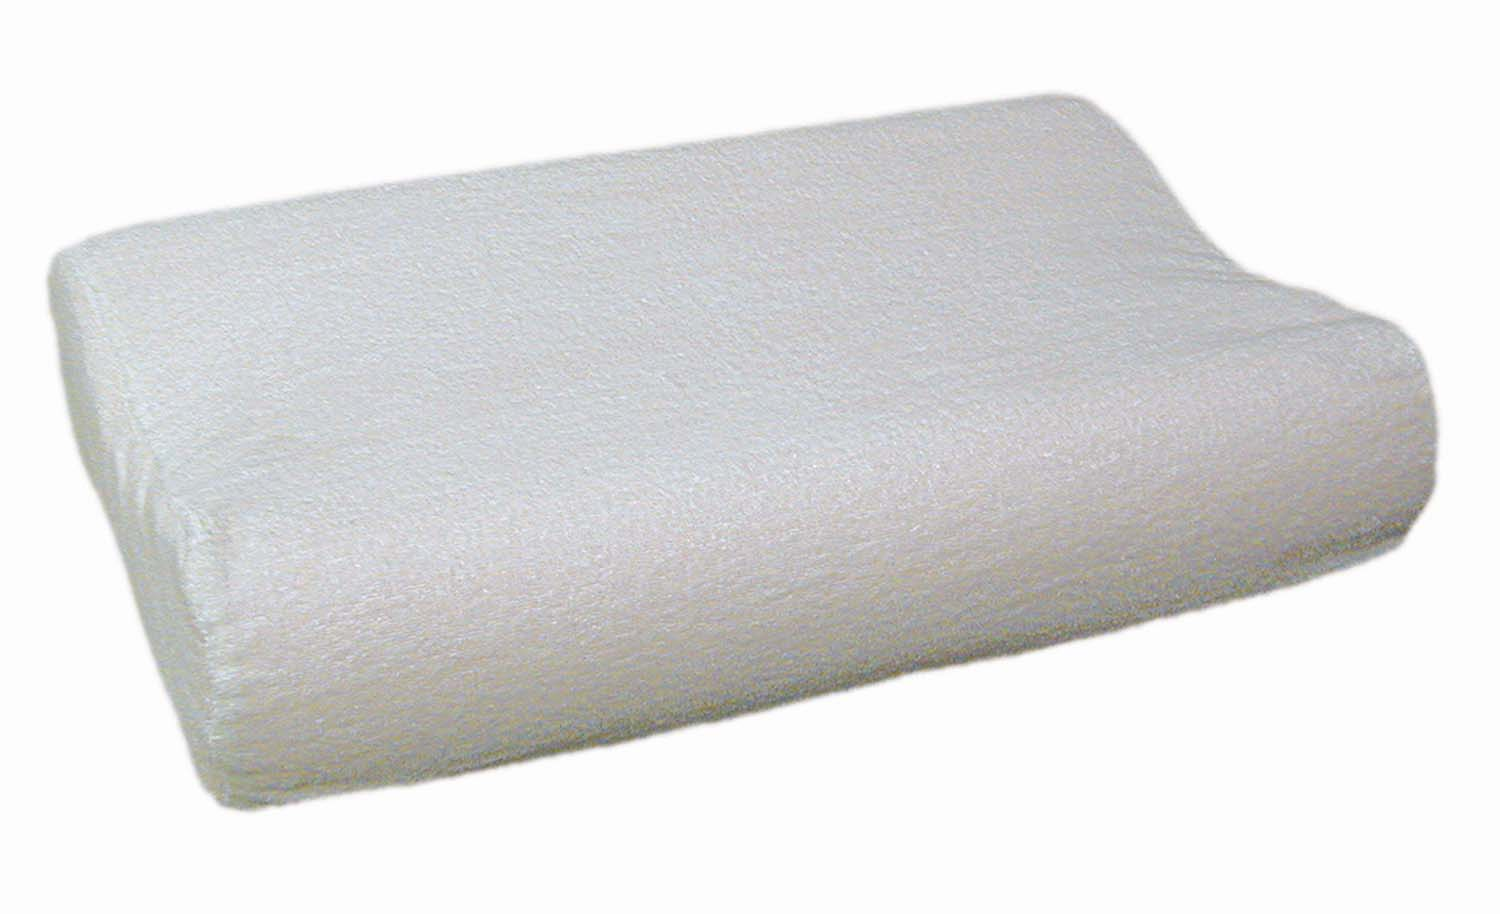 Foam Pillow Standard Size With Terry Cover Sp4a Contoured